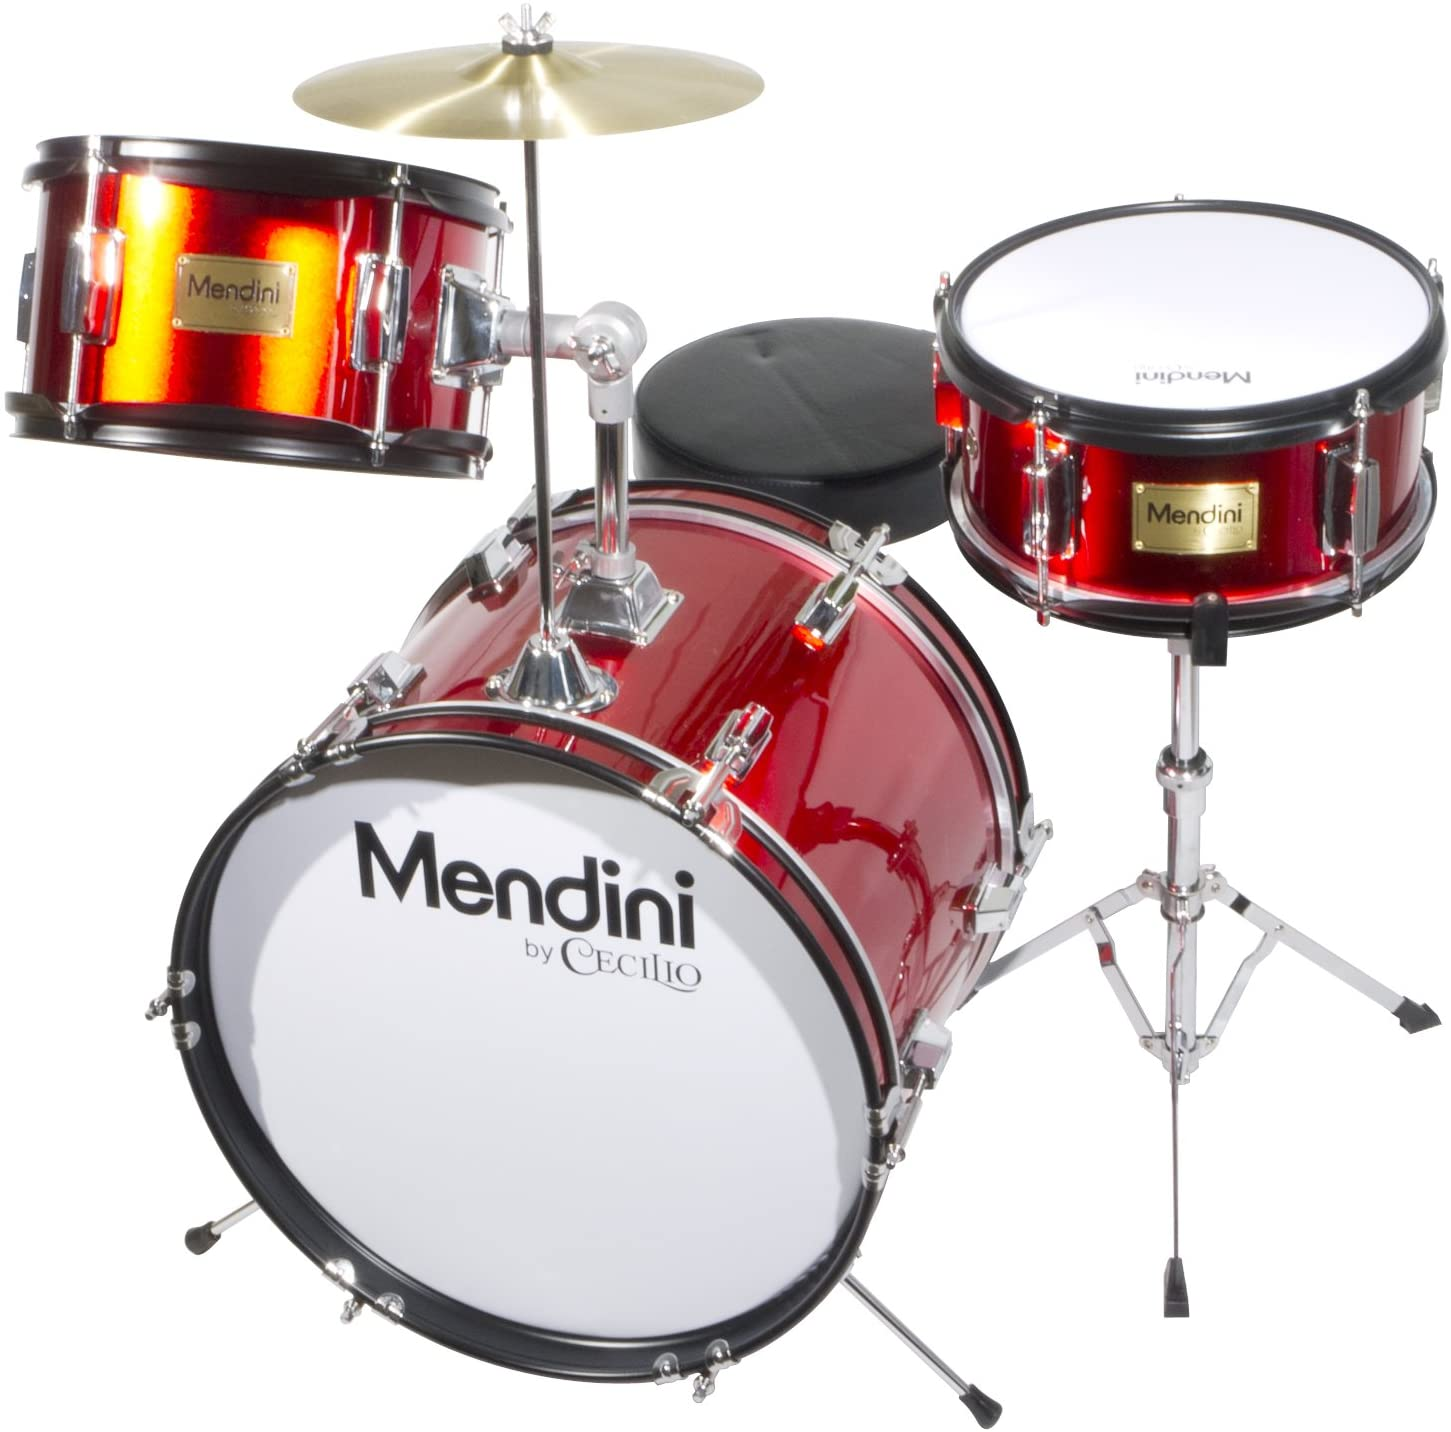 Mendini by Cecilio 16 inch 3-Piece Kids | Drums For Beginner